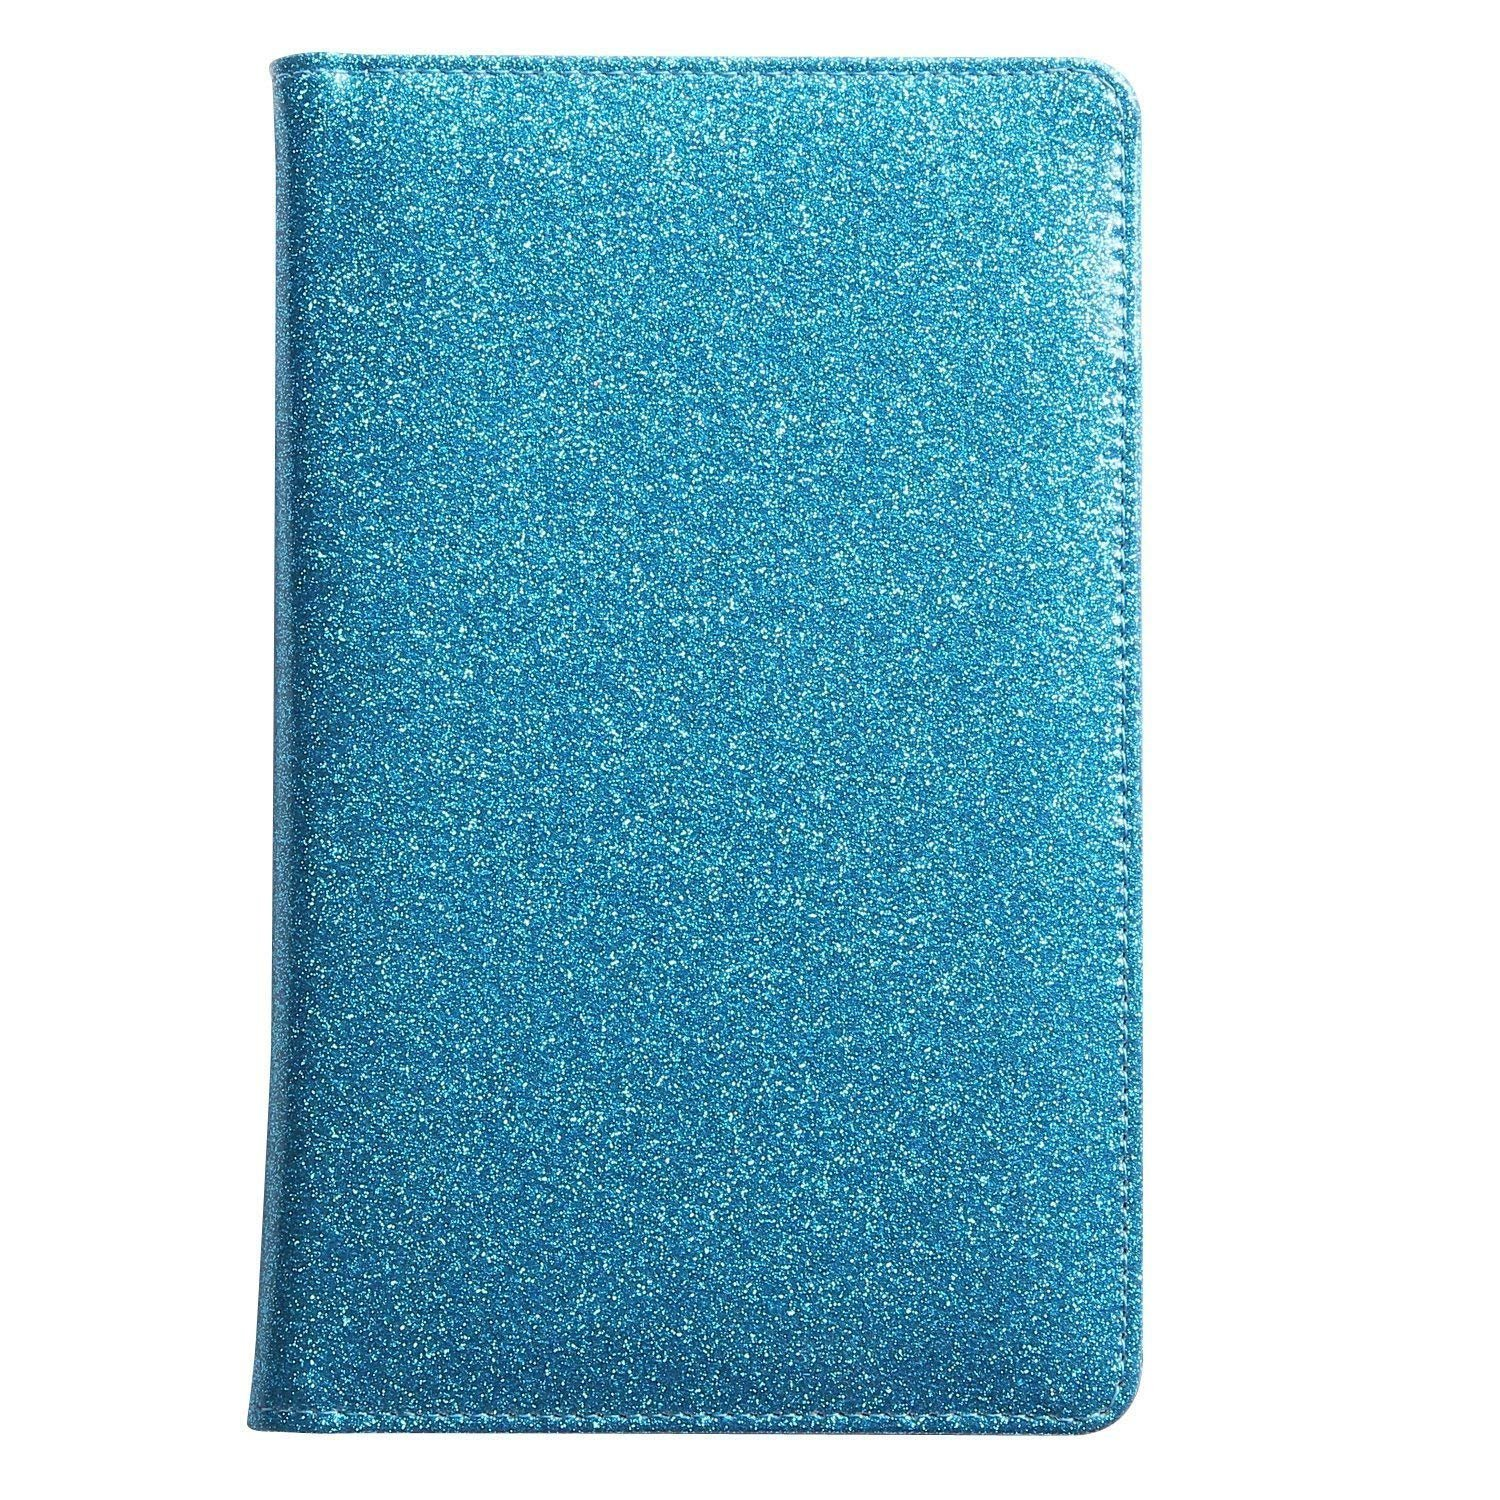 Glitter Server Book for Waitress Book Server Wallet Waiter Book Cute Bling Waitstaff Organizer Fit Waitress Apron (Blue Green Teal Turquoise) by Zreal